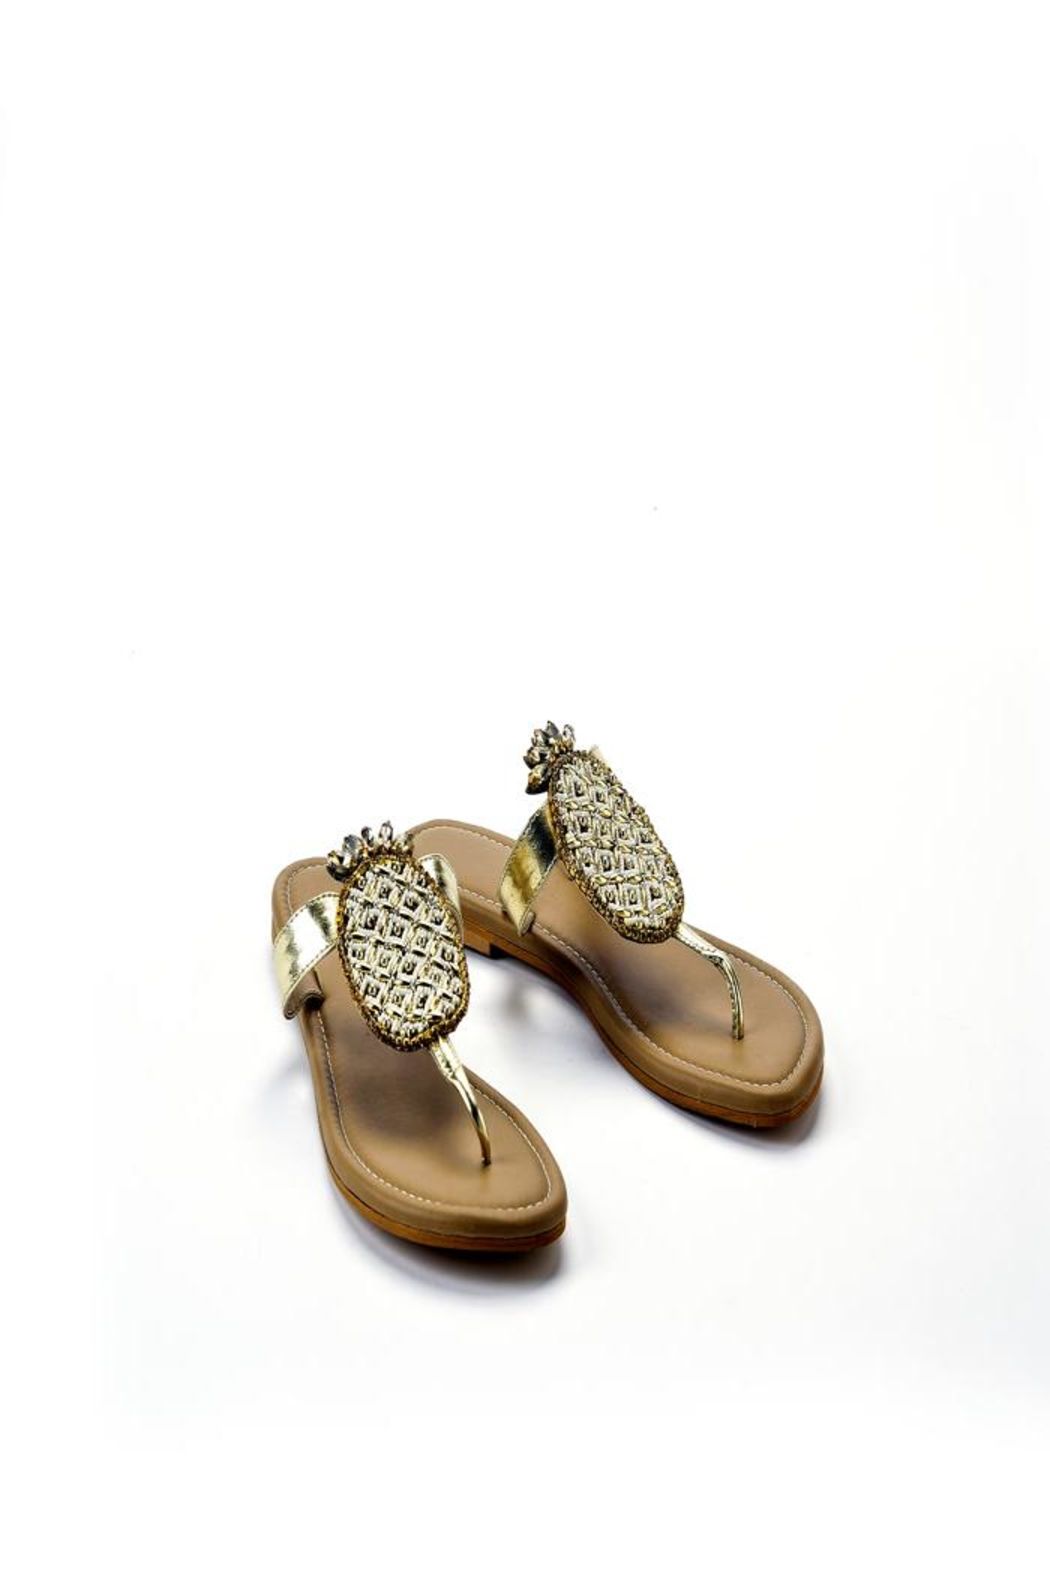 Charlie Paige Gold Pineapple Sandals - Front Full Image